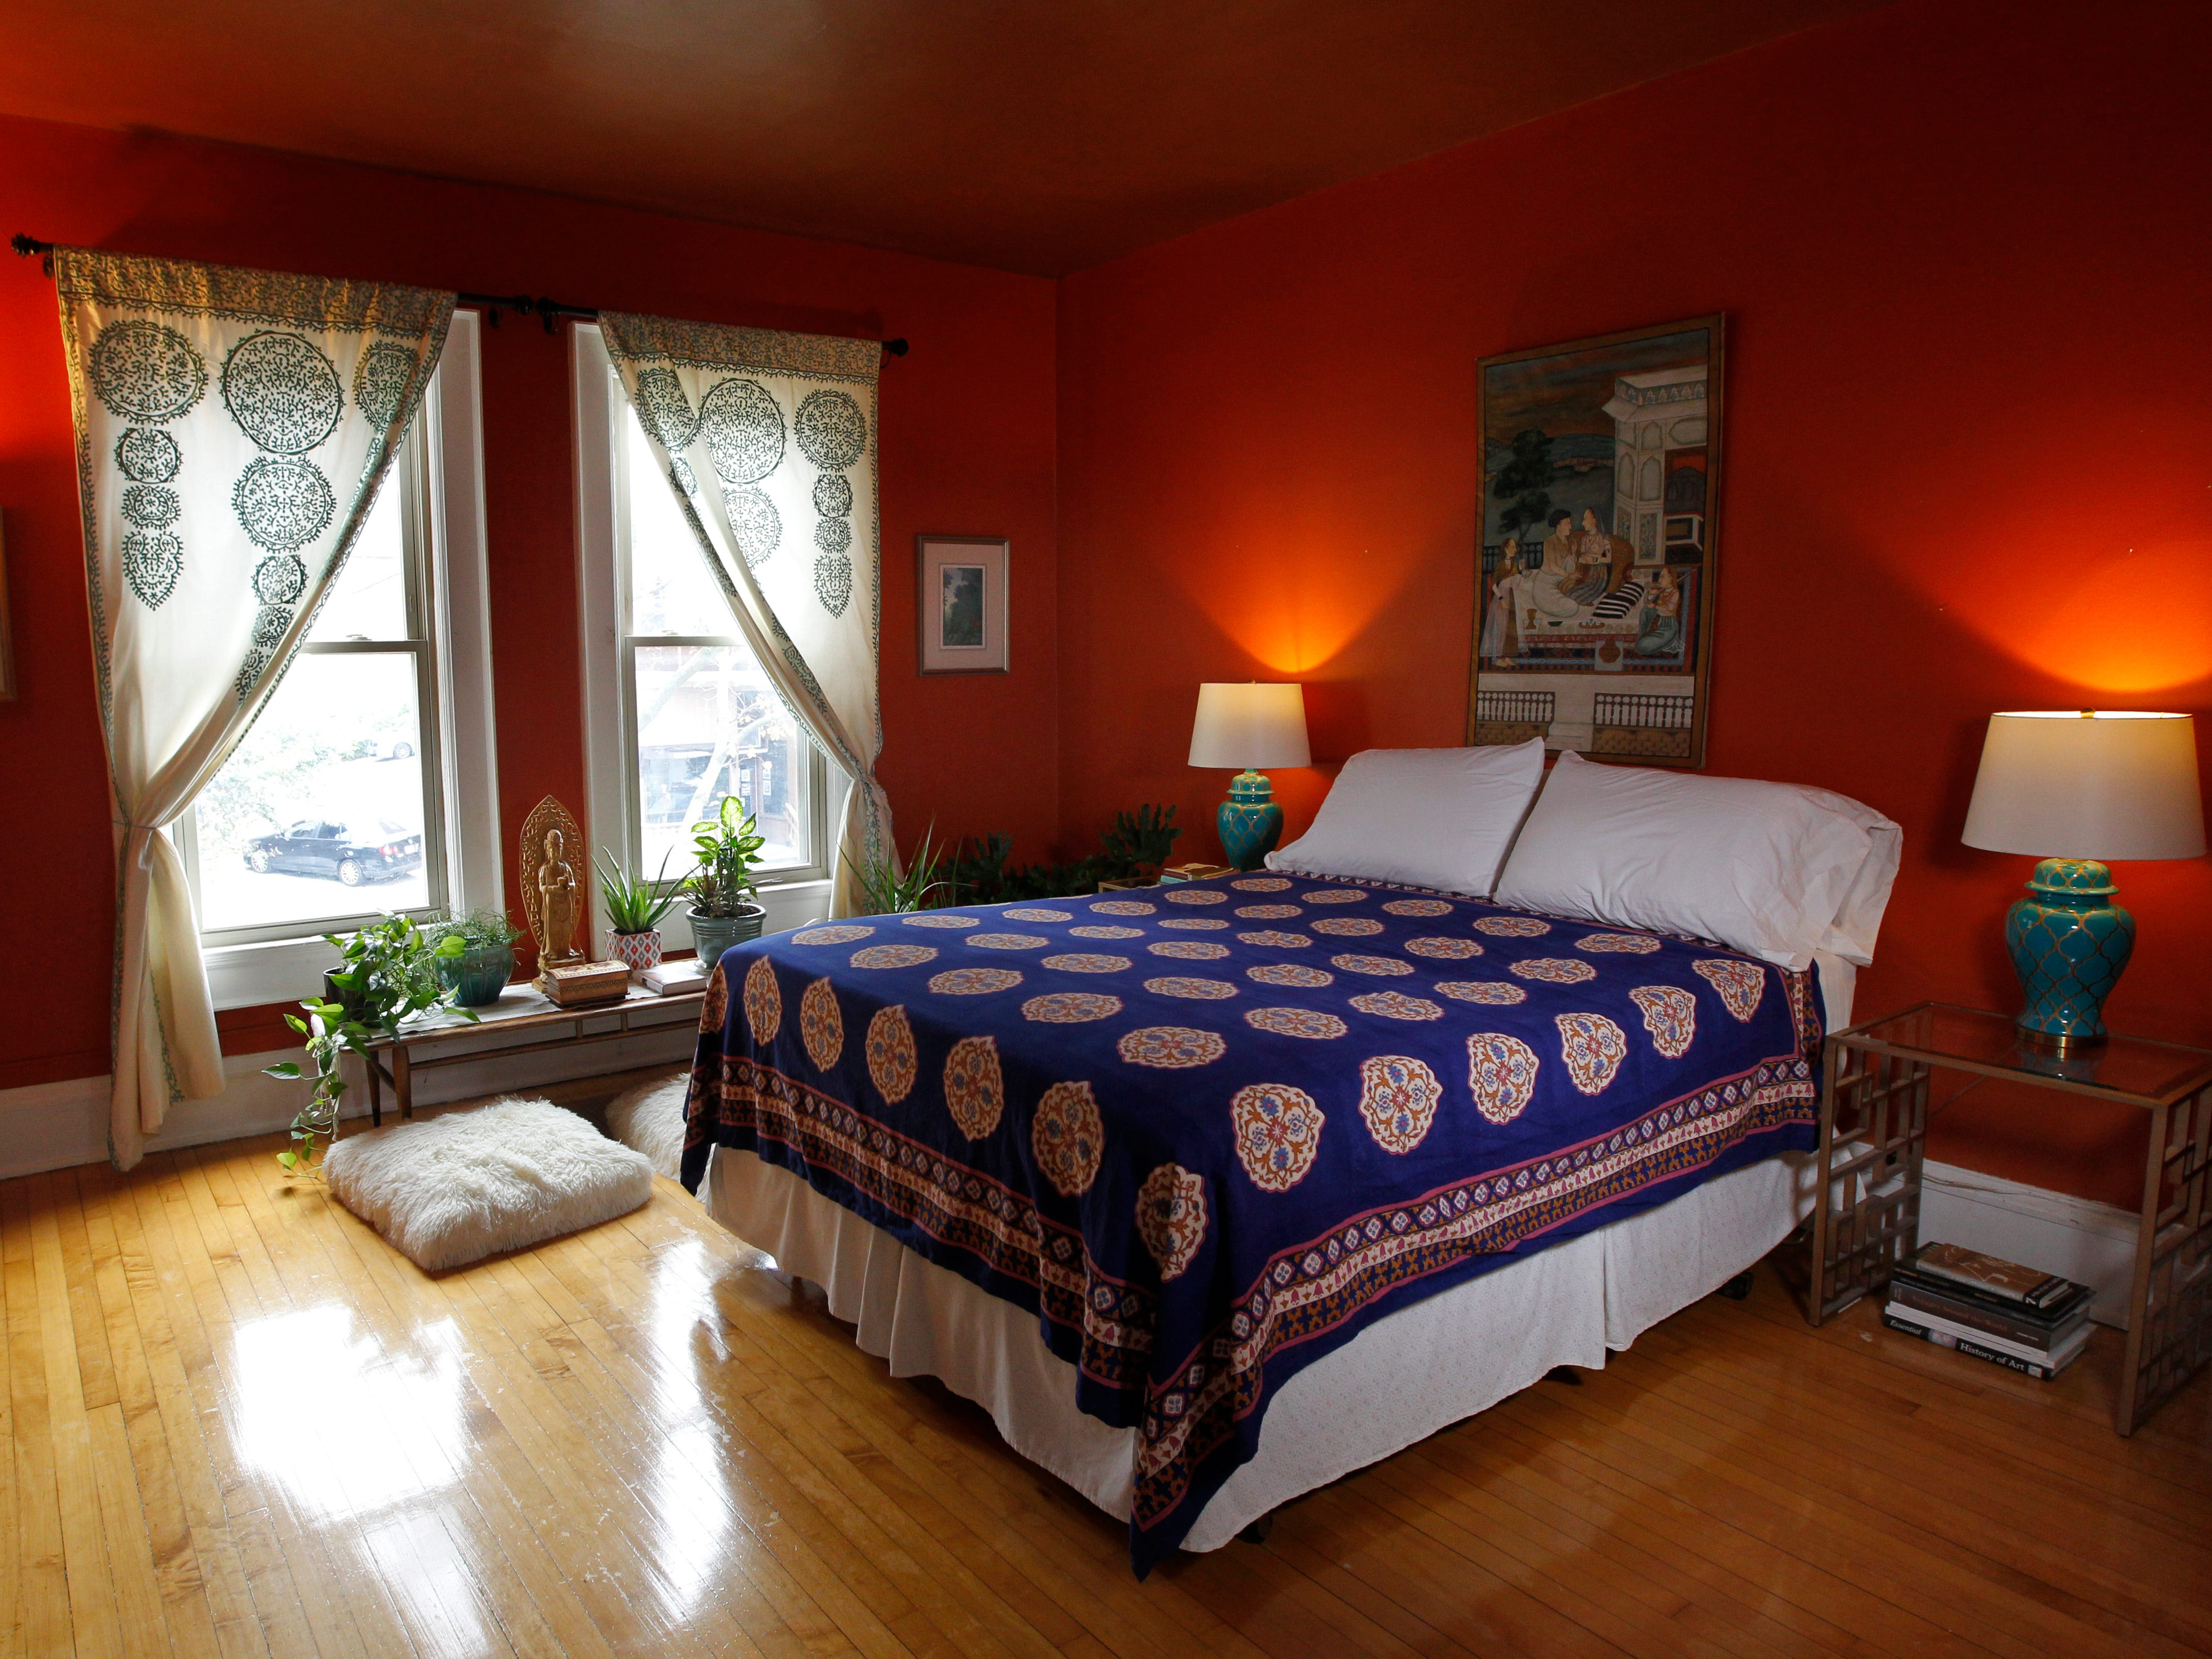 Kevin Kriehn and Mara Duckens followed an Indian-inspired theme for their master bedroom.